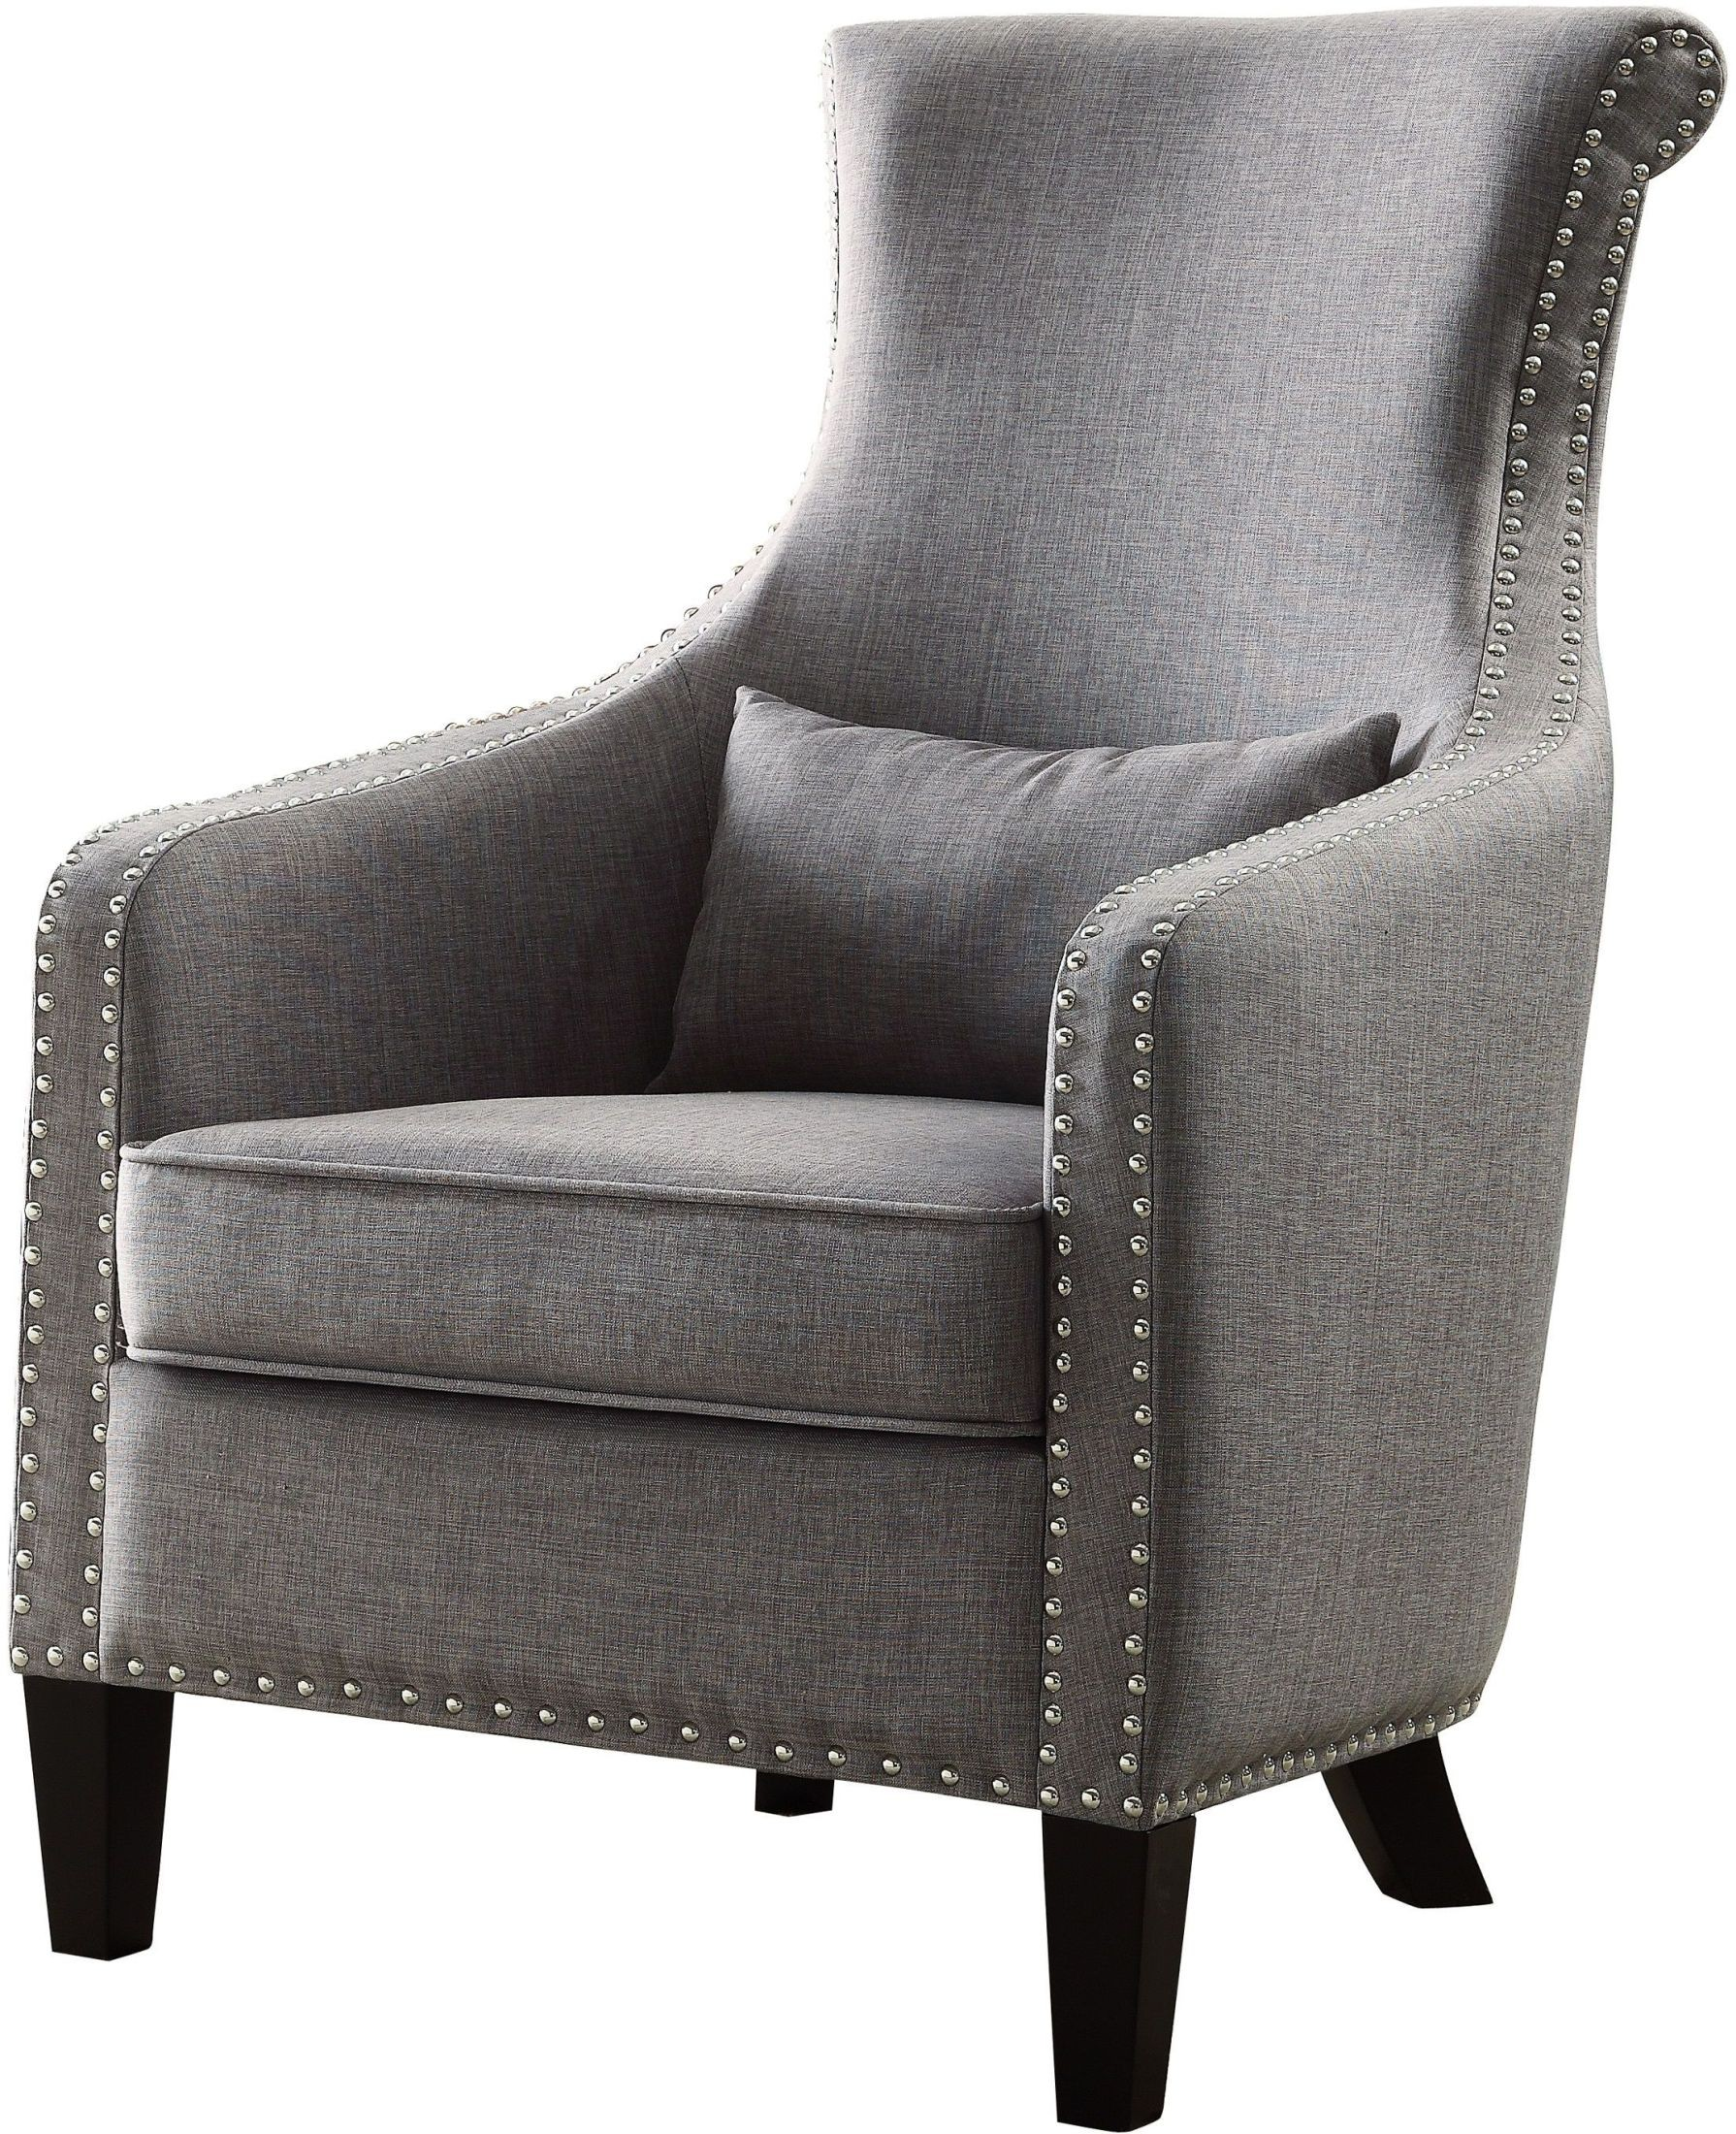 Arles Grey Accent Chair From Homelegance